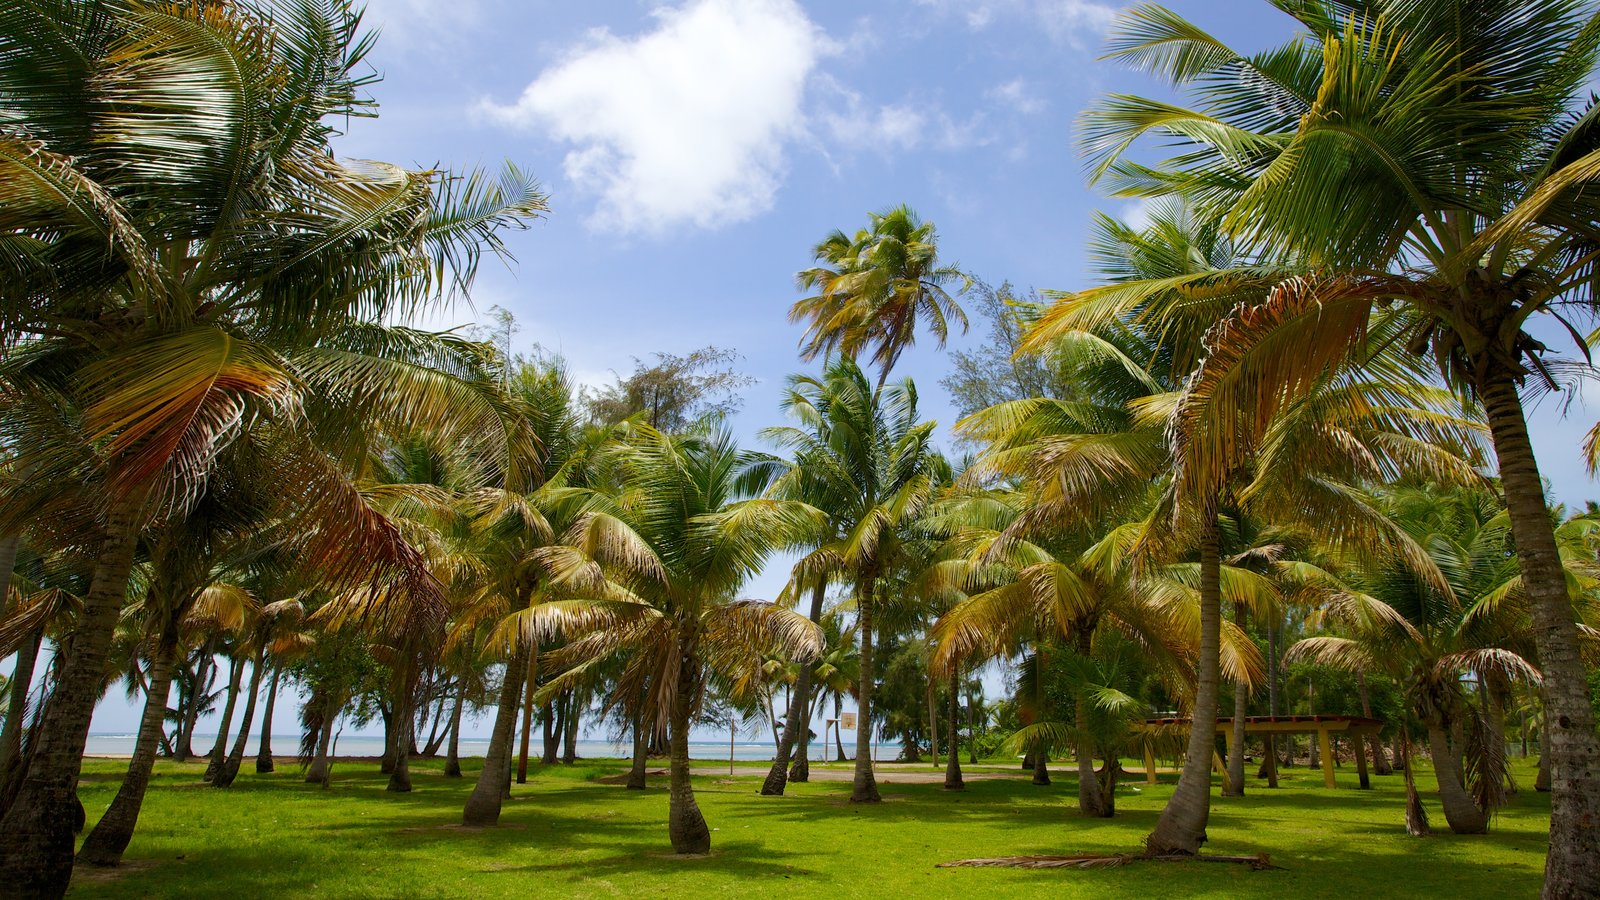 Luquillo Beach showing tropical scenes